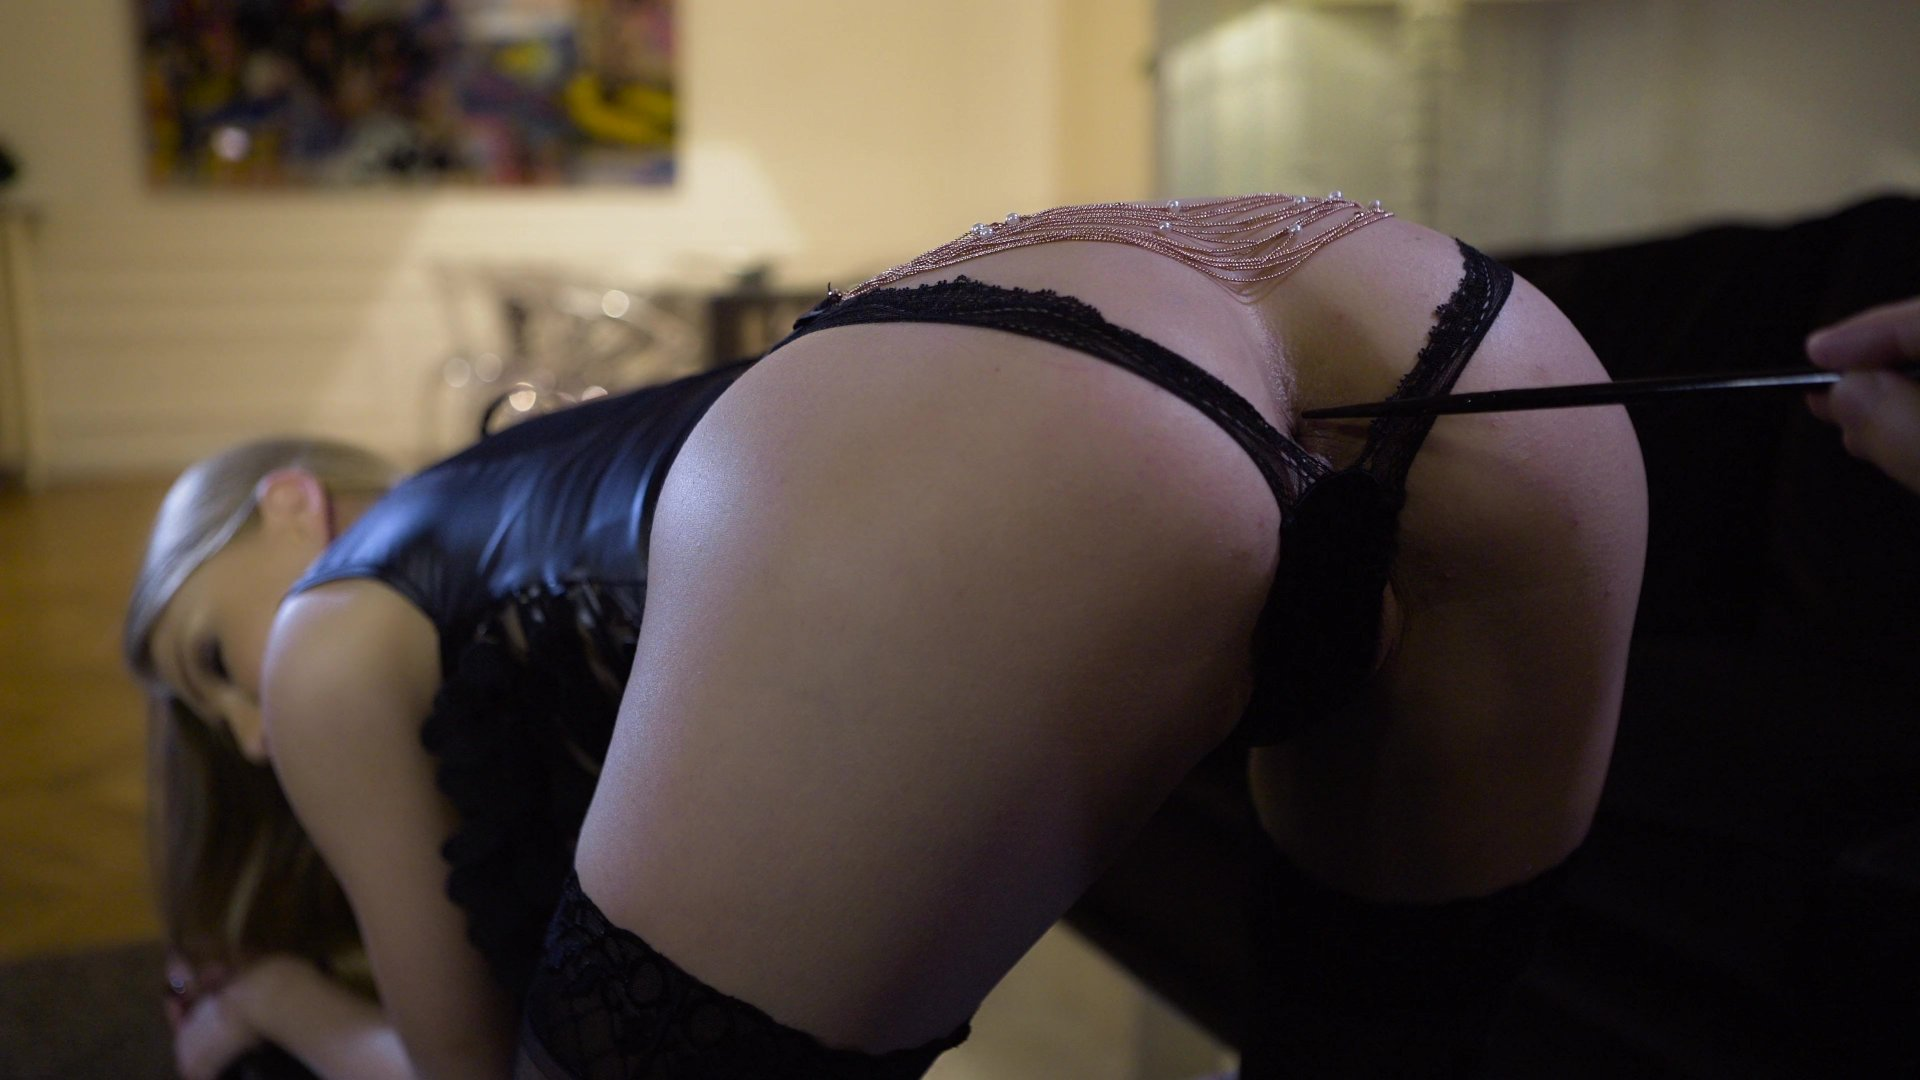 Preview image 4 out of 18  of scene 3 from Claire Desires Of Submission